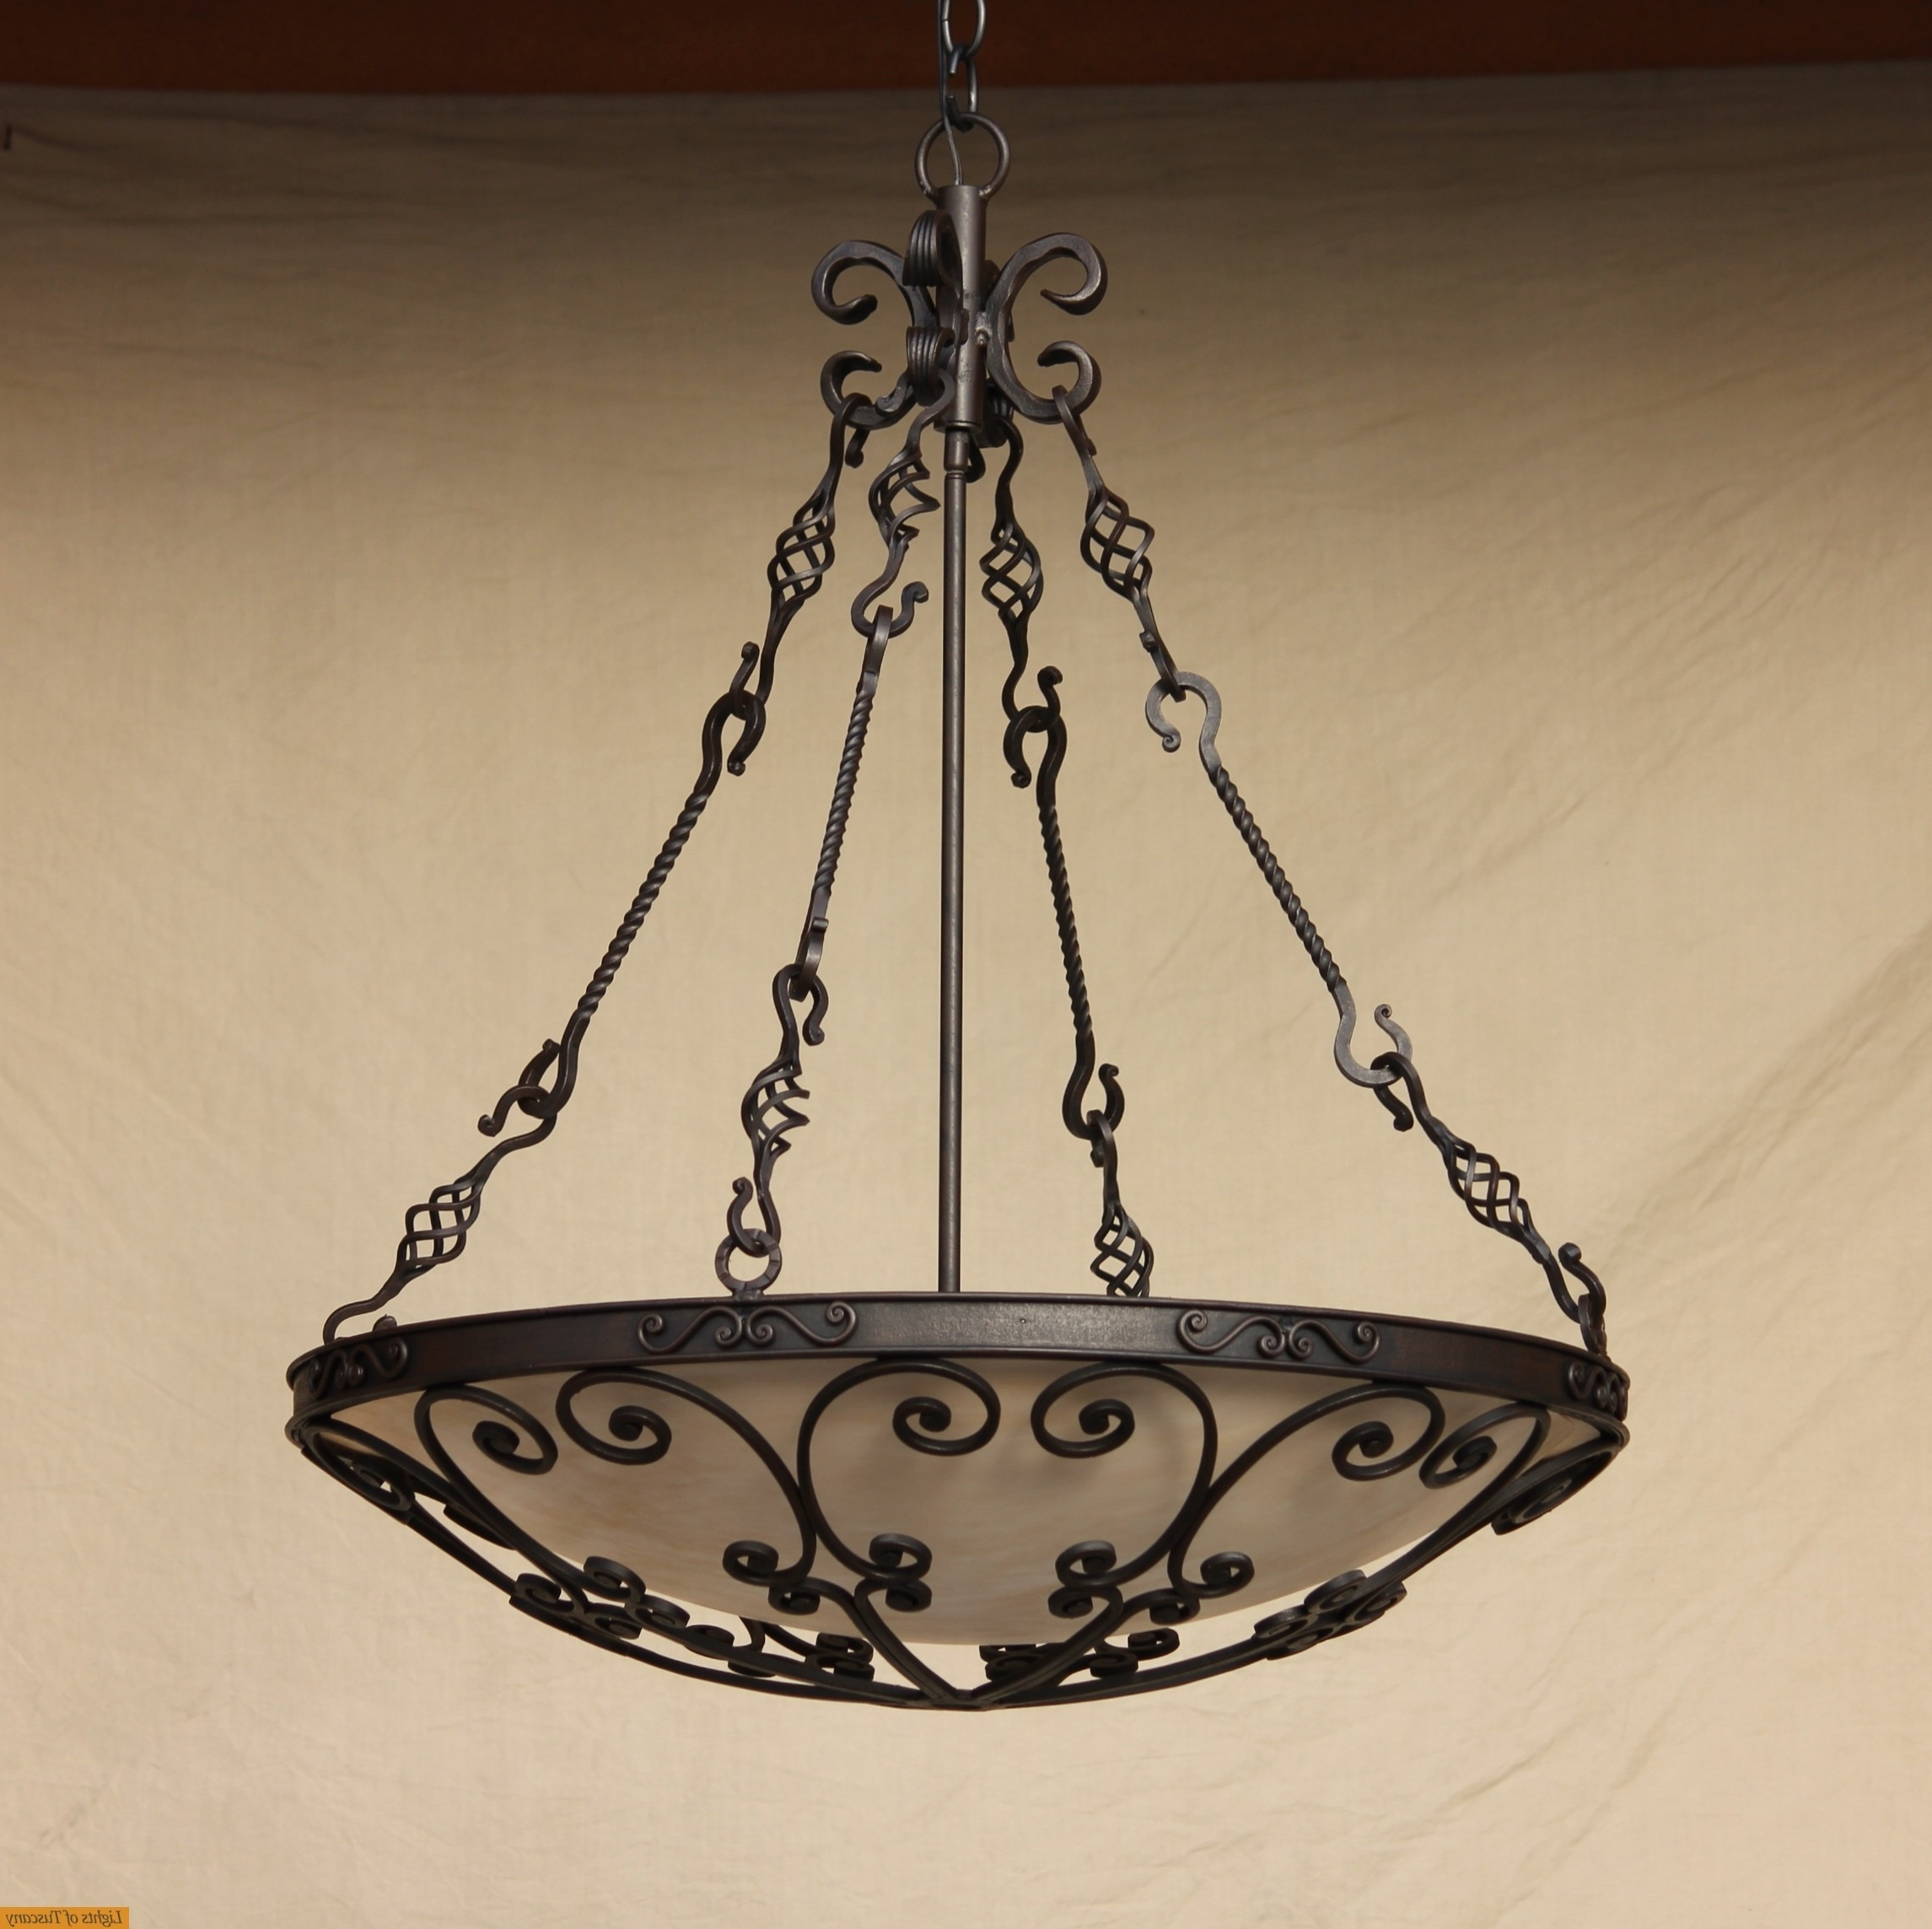 Lights Of Tuscany 2405 6 Mediterranean /spanish Style Wrought Iron Regarding Most Popular Outdoor Iron Hanging Lights (View 3 of 20)